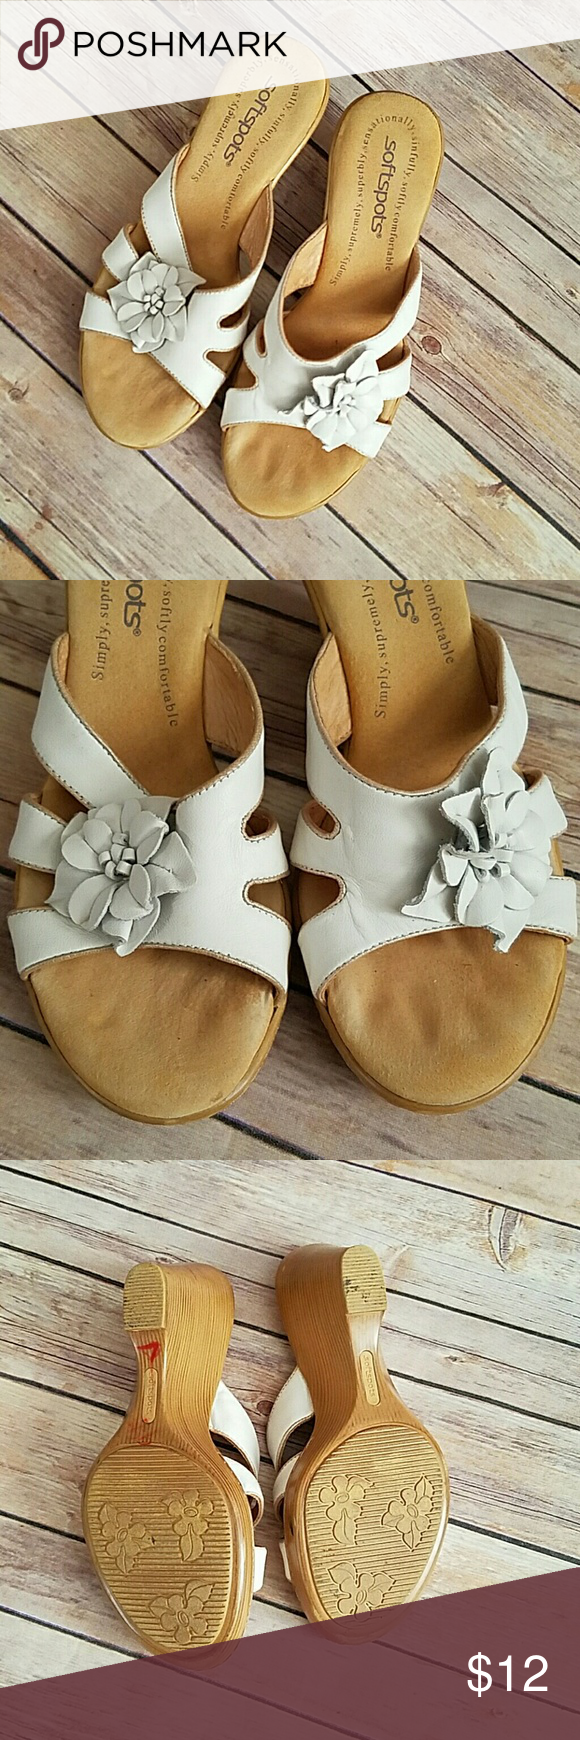 Softspots White Wedge Sandals Flowers Sz 65 White Wedge Sandals